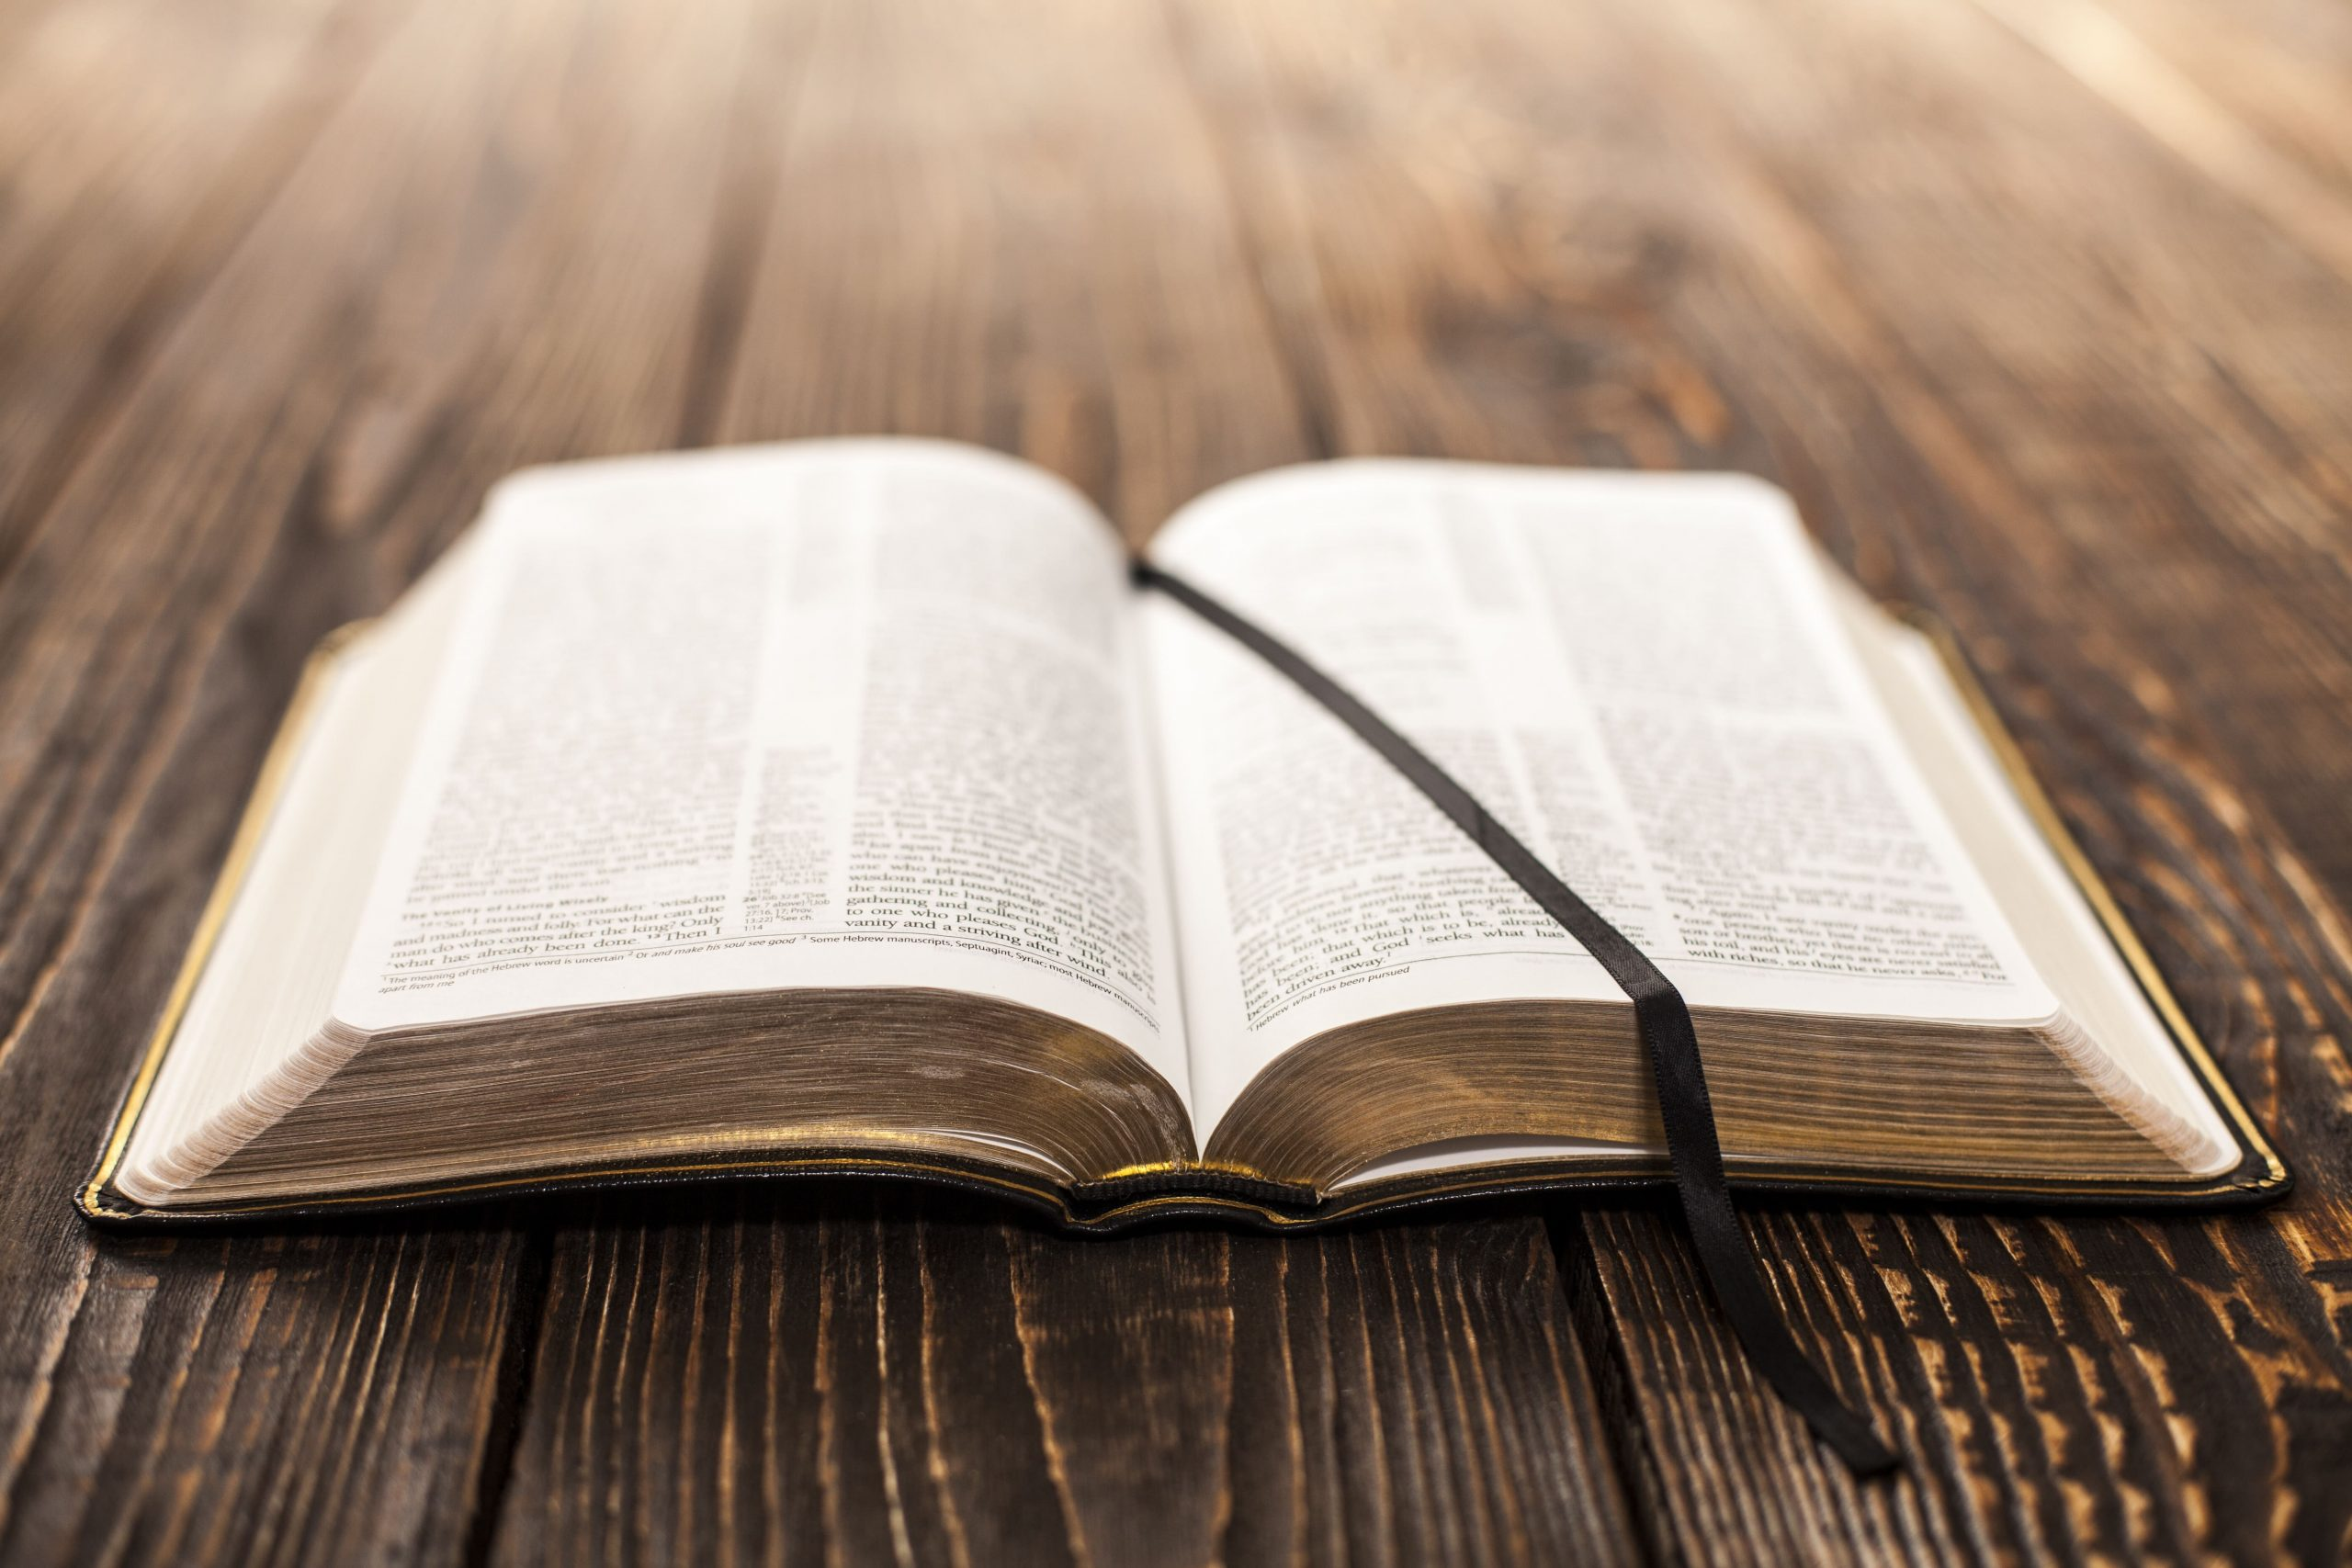 Bible laying open on wooden table